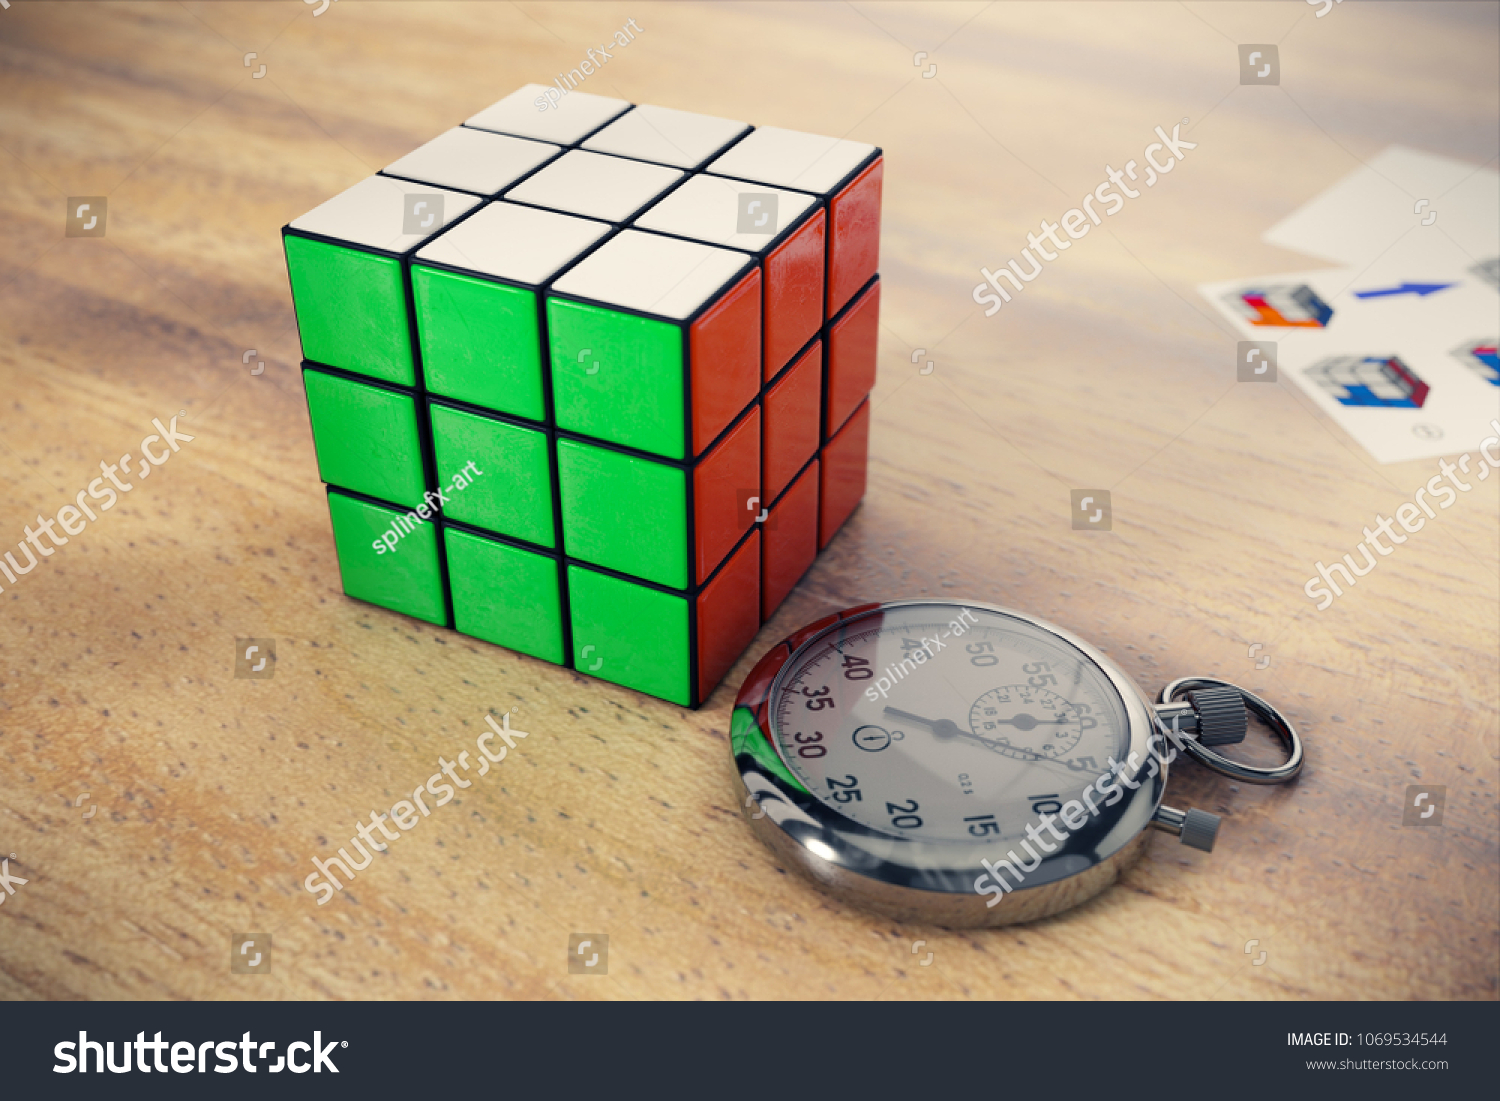 hight resolution of rubik s cube on a wooden table with a stopwatch near it and solving diagram on background